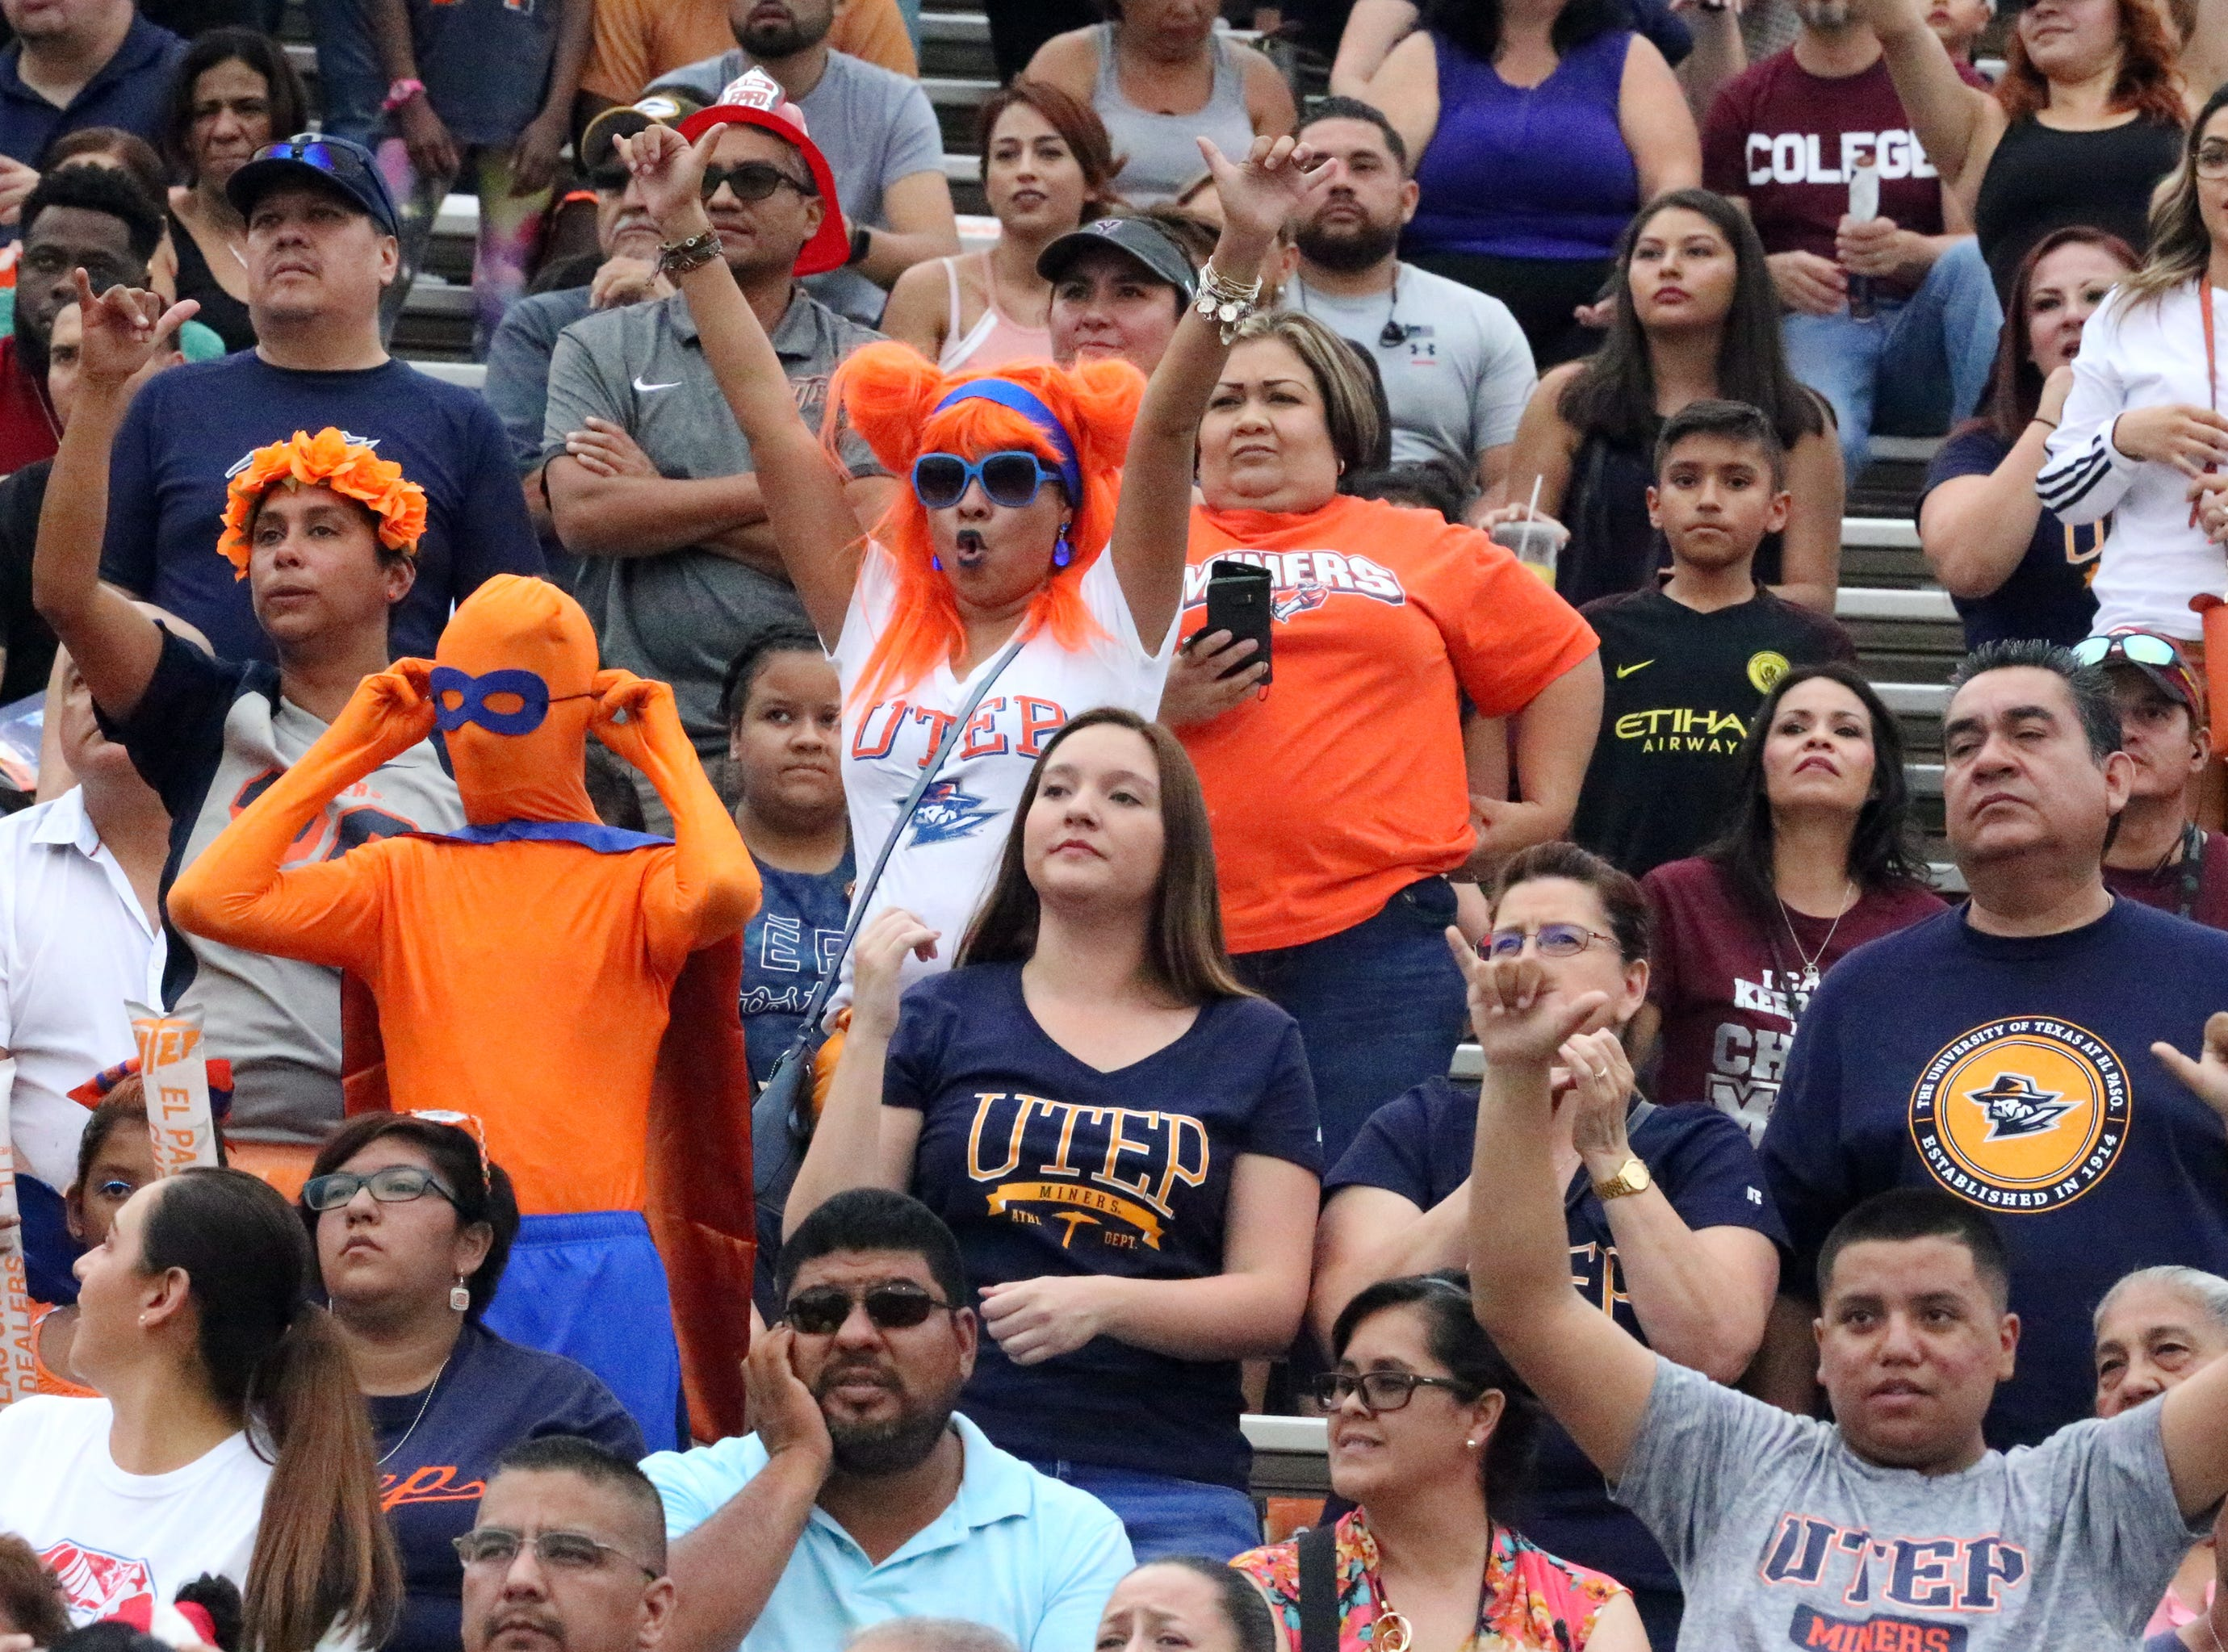 UTEP fans ready to watch their team play Saturday night in the Sun Bowl Stadium.